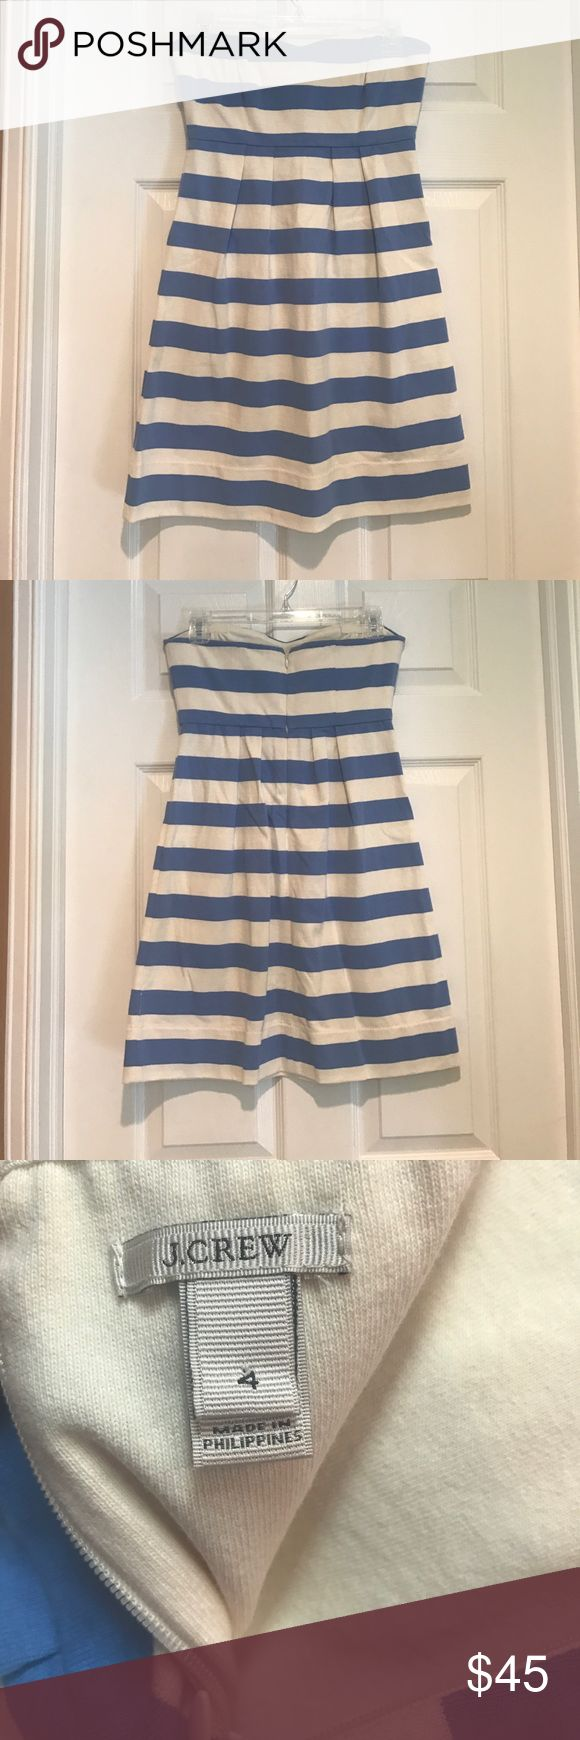 J. Crew Striped Nautical Strapless Dress blue and cream strapless dress. 100% cotton and zips up the back. Super cute and comfy. Worn once J. Crew Dresses Strapless